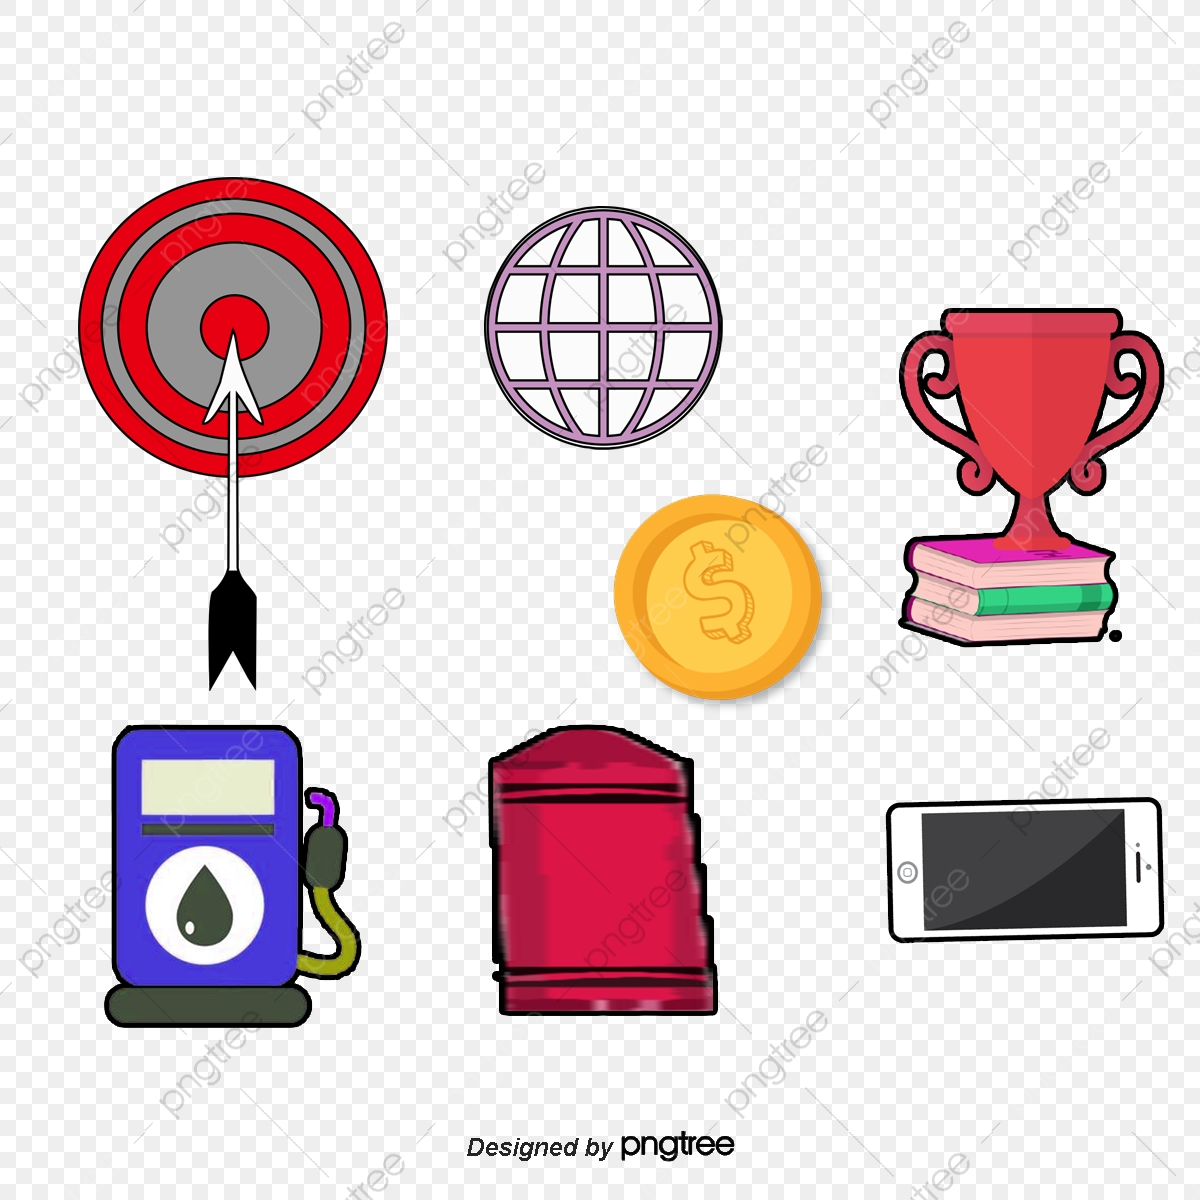 digital marketing target vector target vector vector graphics vector png transparent clipart image and psd file for free download pngtree